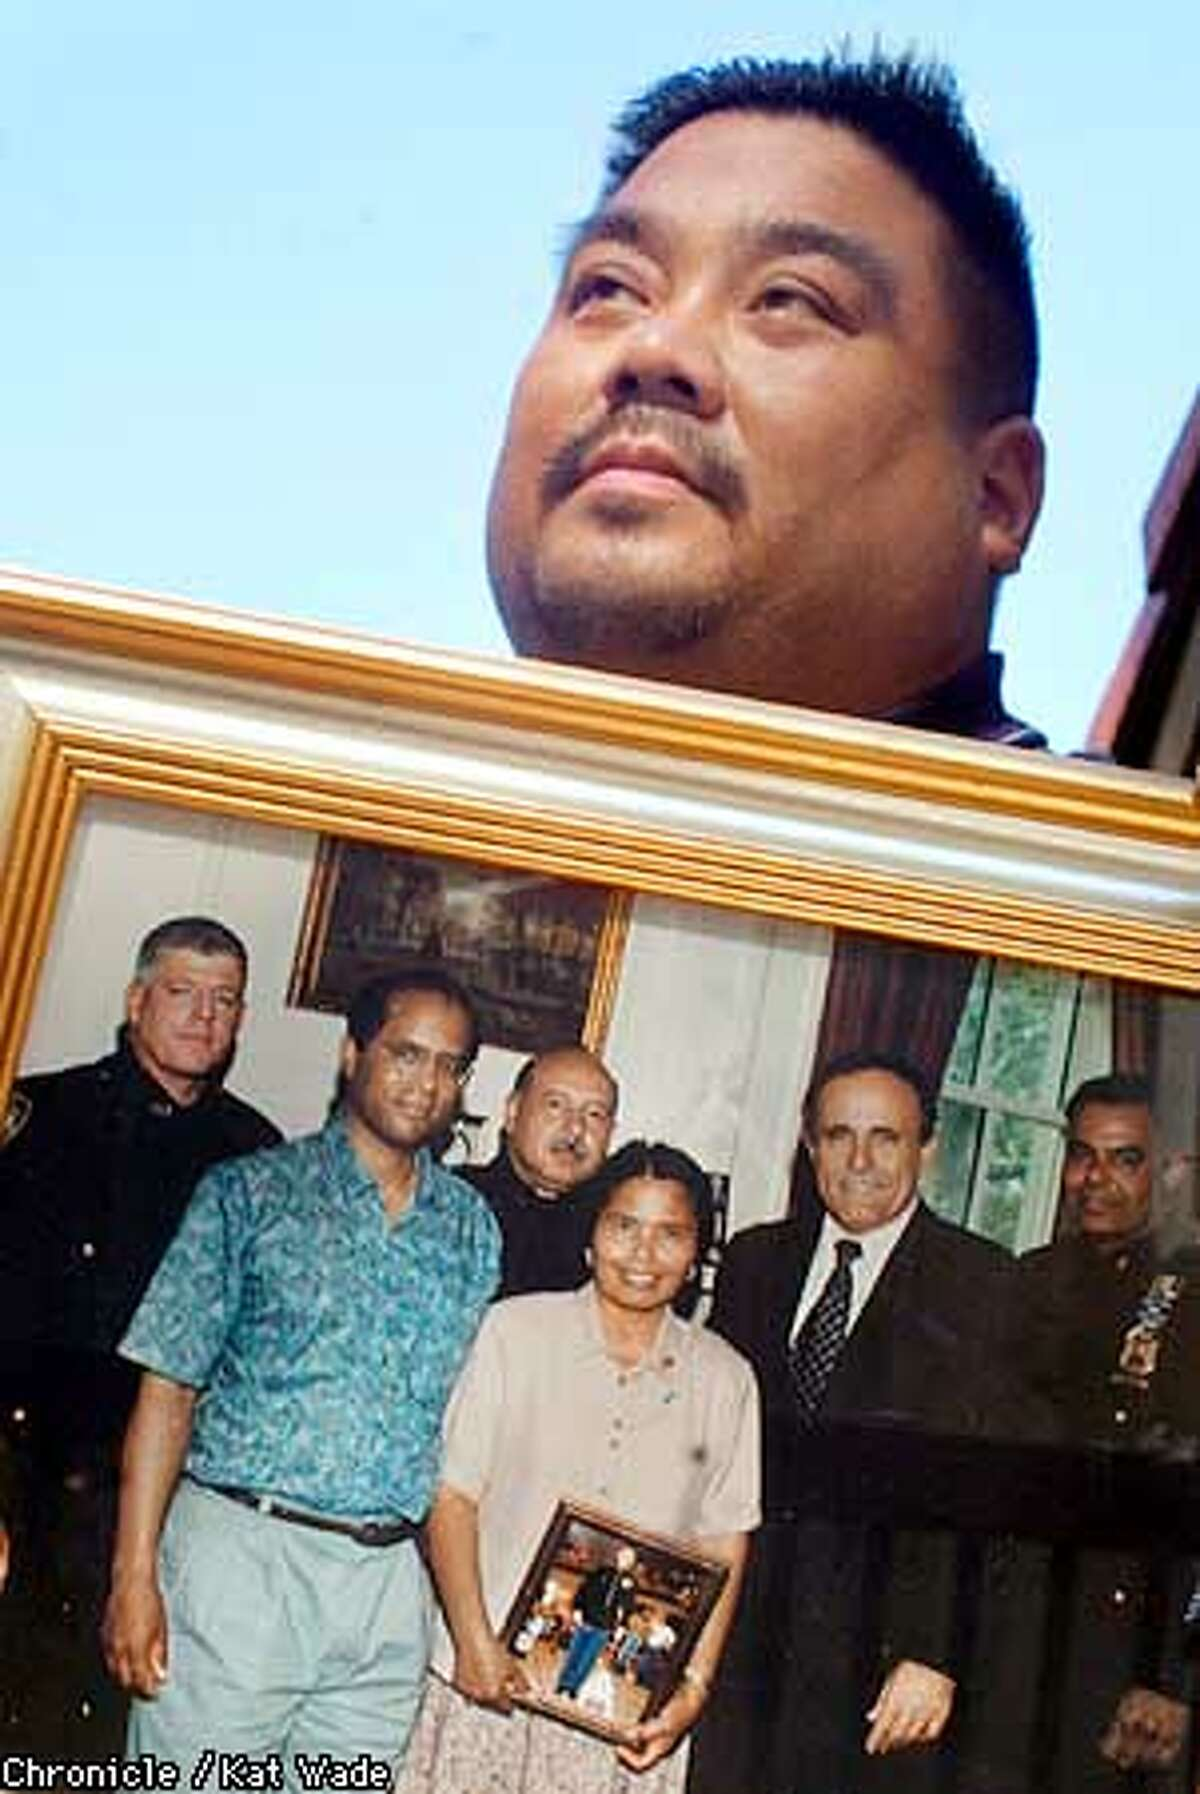 Rudy Guzman' whose brother, Randy a Martine Corps captain died in the Oaklahoma City bombing six years ago, poses with a 1996 photo of (L to R) Michael Curtin, NYPD, Fred Morgan, Manny Hernandez NYPD, Linda Morgan (holding a photo of her son Randy Guzman) NY Mayor, Rudy Guiliani, and J.R. Garcia, NYPD. Curtin who found Randy's body is now presumed dead during rescue efforts in the September 11th colapse of the WTC. SAN FRANCISCO CHRONICLE PHOTO BY KAT WADE